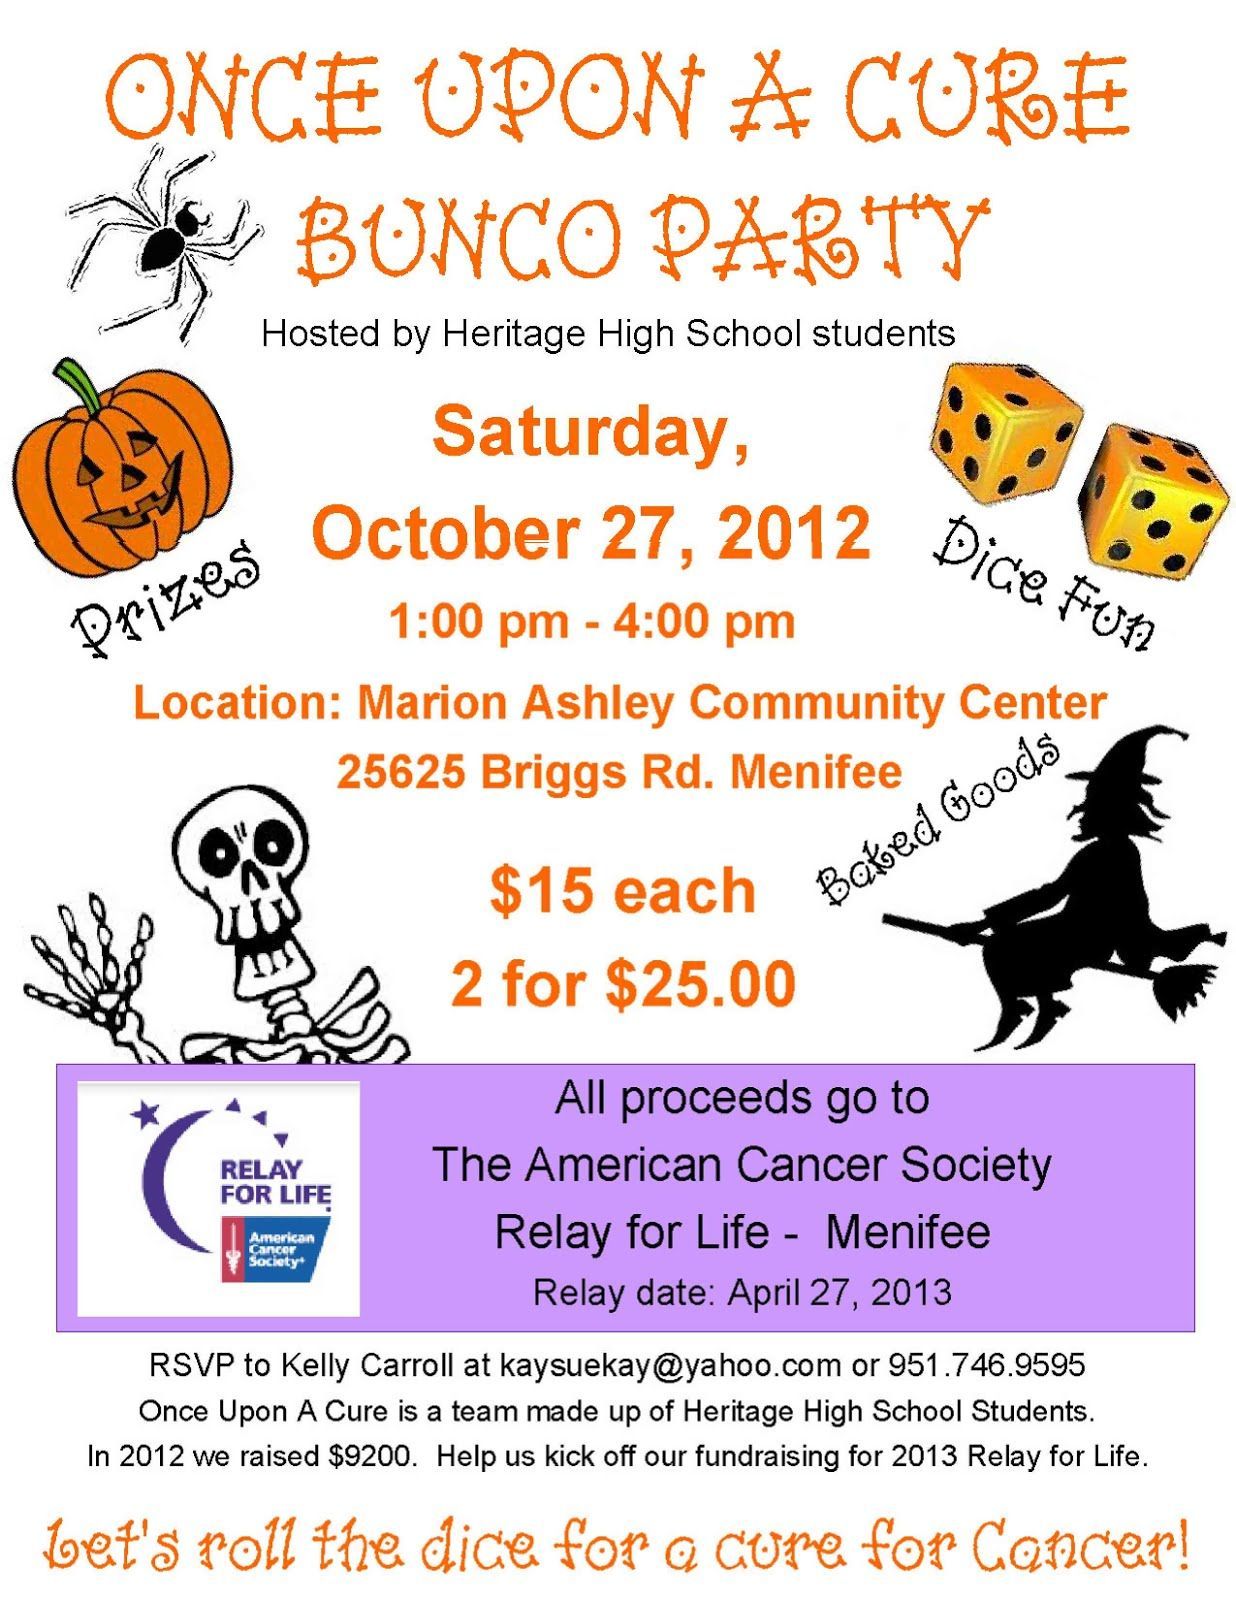 Pin by Becky Syring Hull on Relay For Life | Pinterest | Bunco party ...